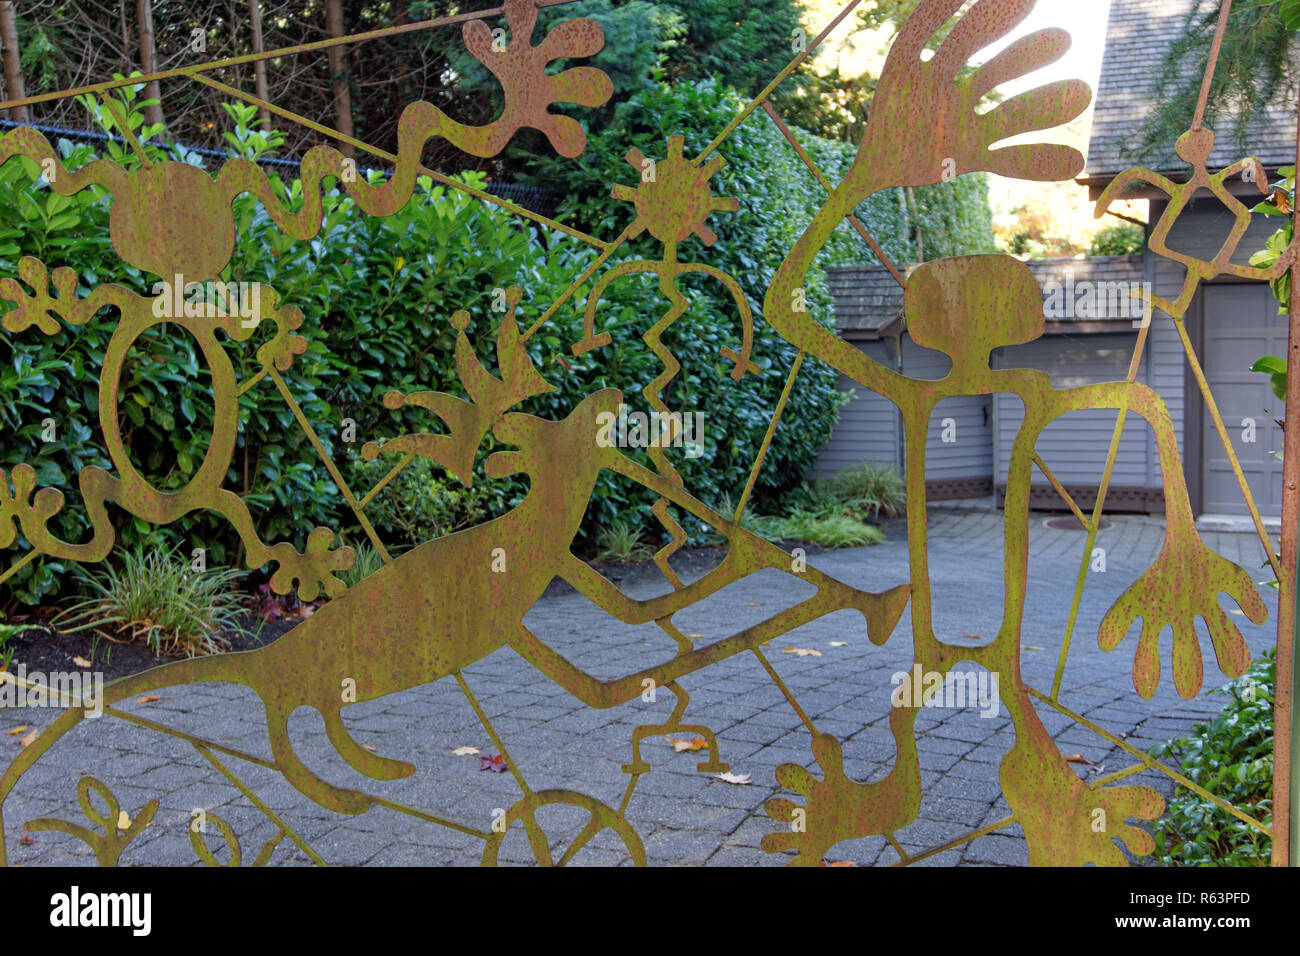 Close-up of whimsical cutout figures decorating the metal gate of a driveway - Stock Image